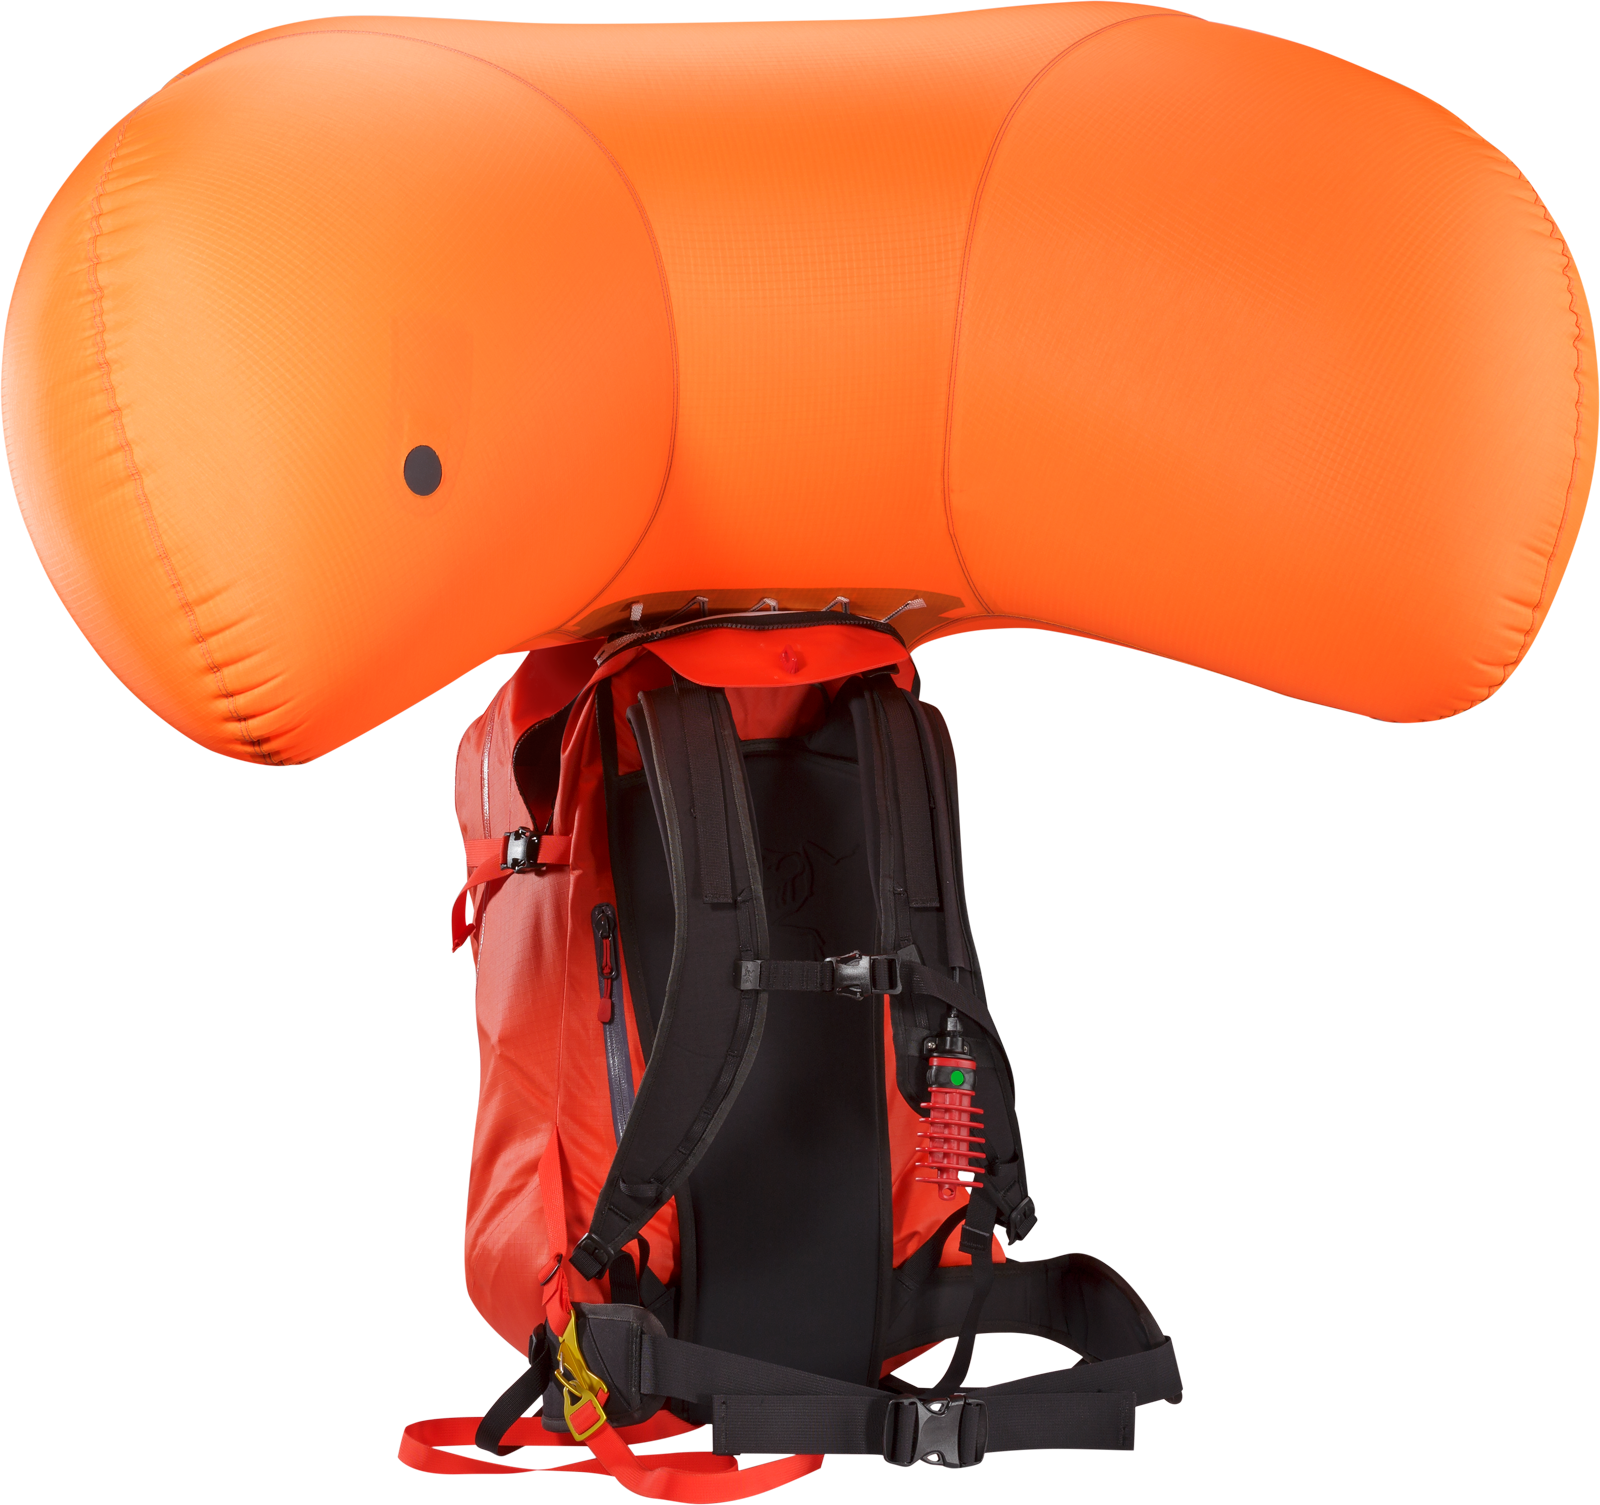 Arcteryx Voltair inflated